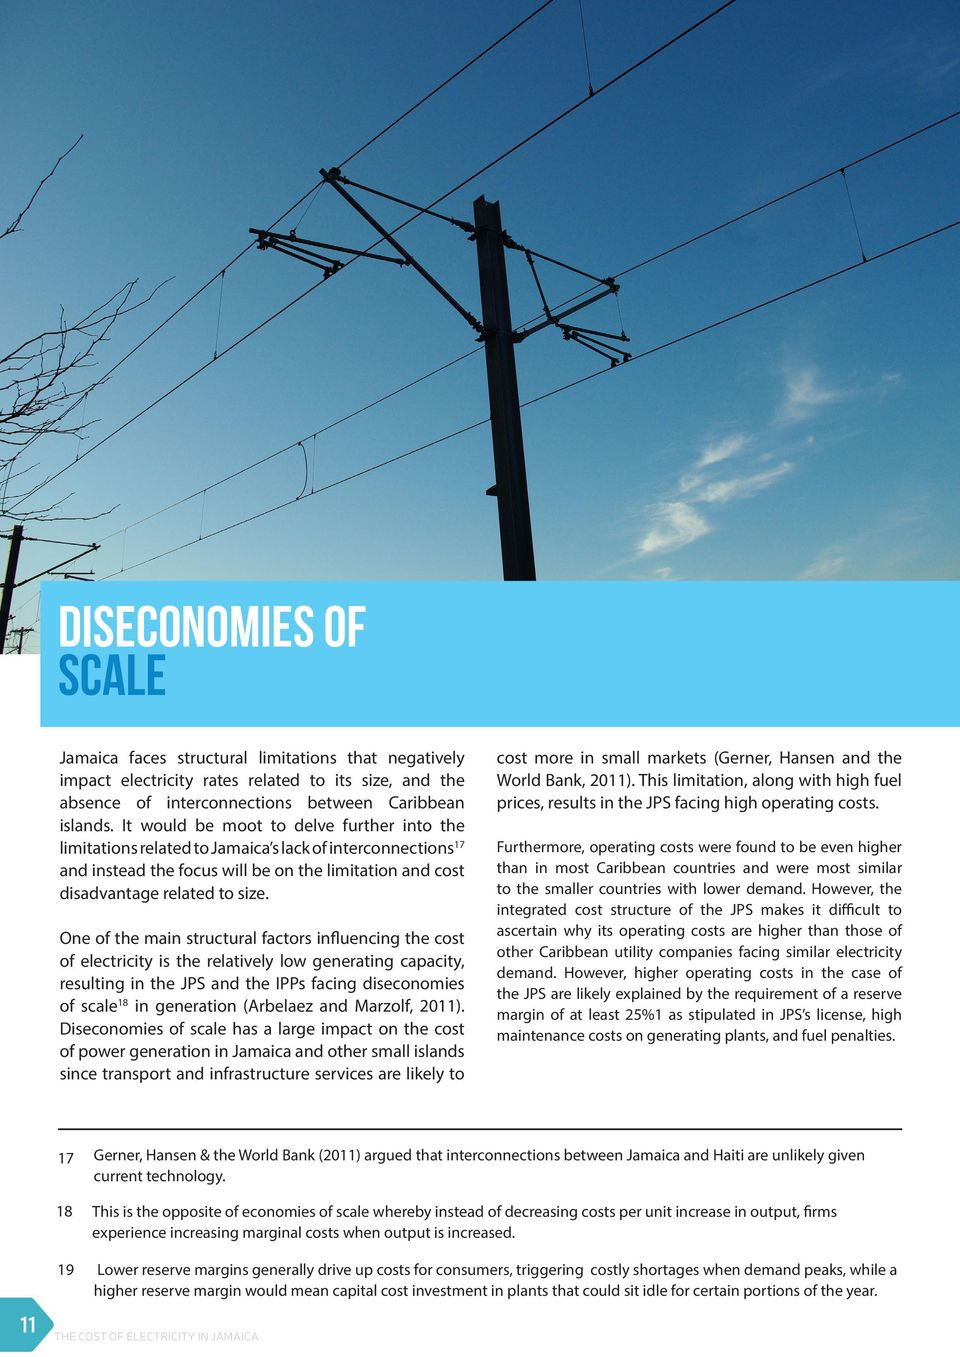 One of the main structural factors influencing the cost of electricity is the relatively low generating capacity, resulting in the JPS and the IPPs facing diseconomies of scale 18 in generation